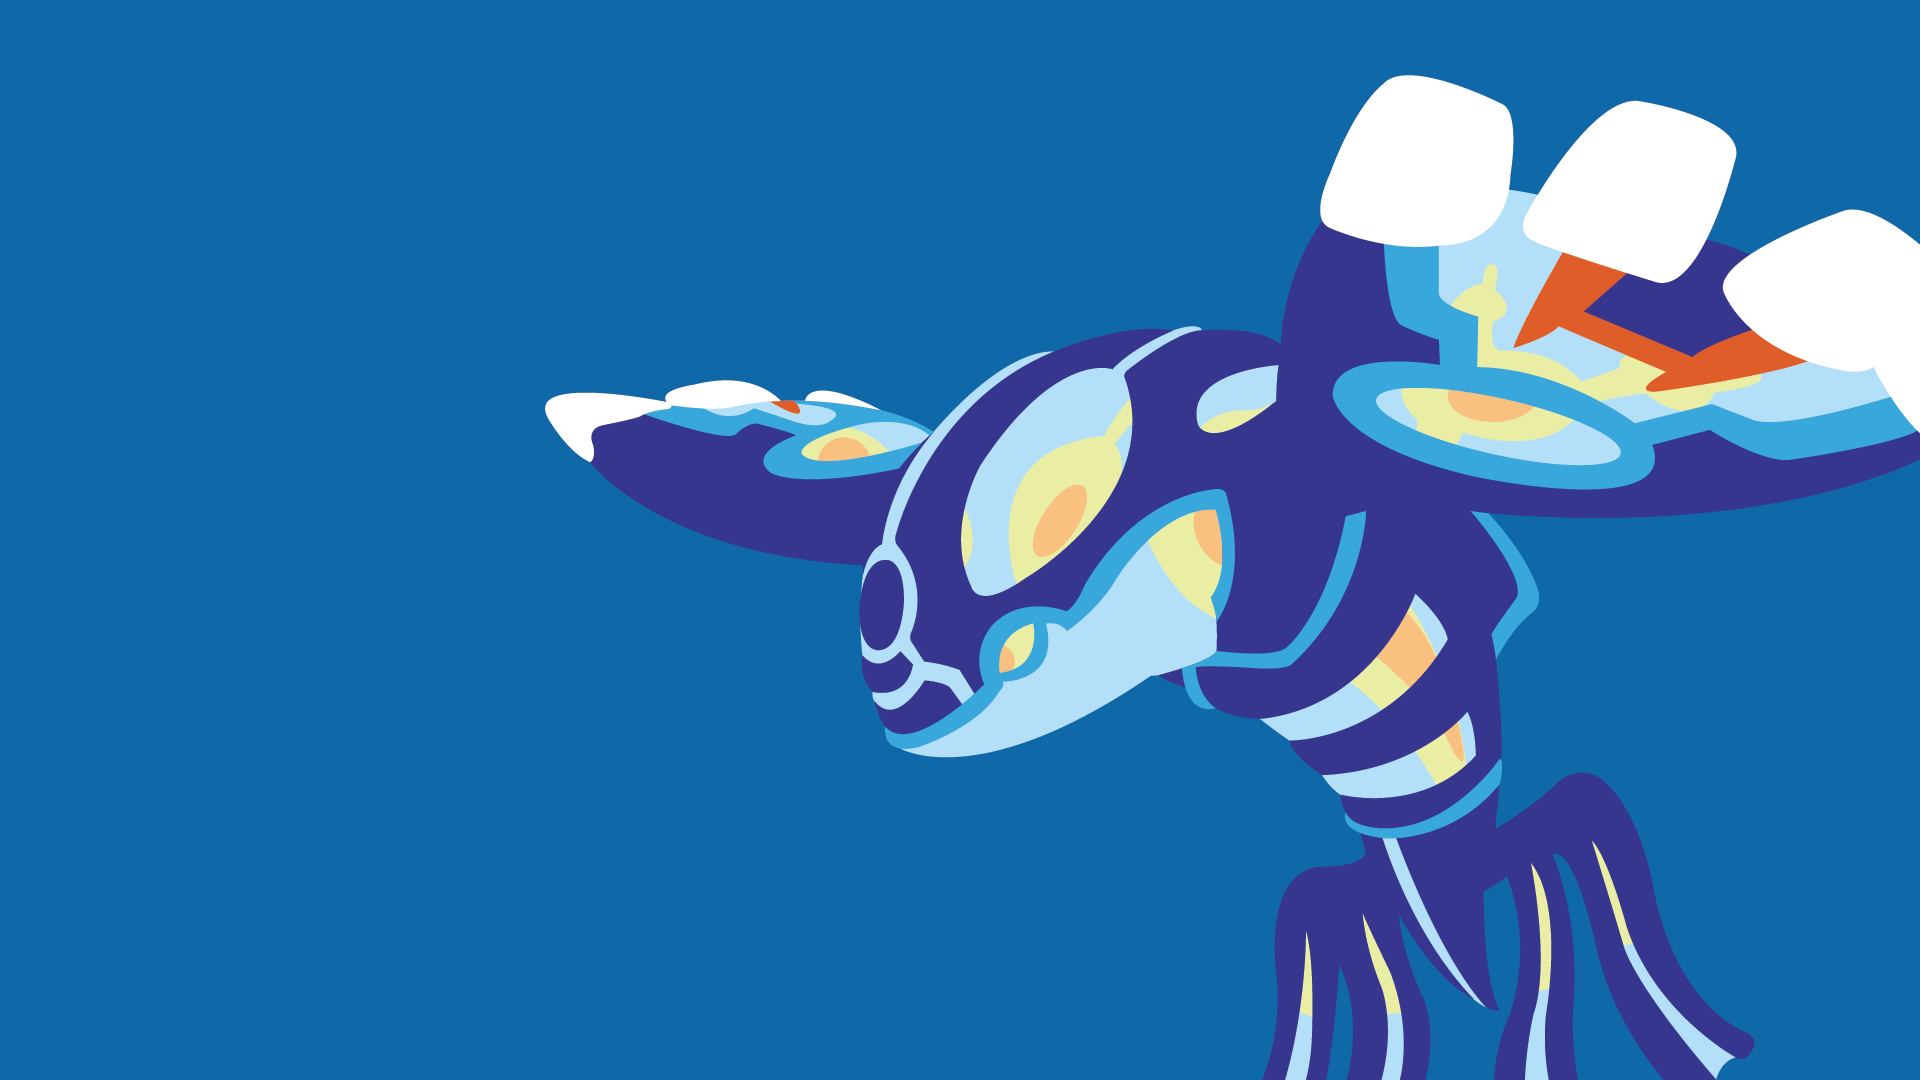 Primal Kyogre Wallpaper Full HD Wallpaper and Background Image ...